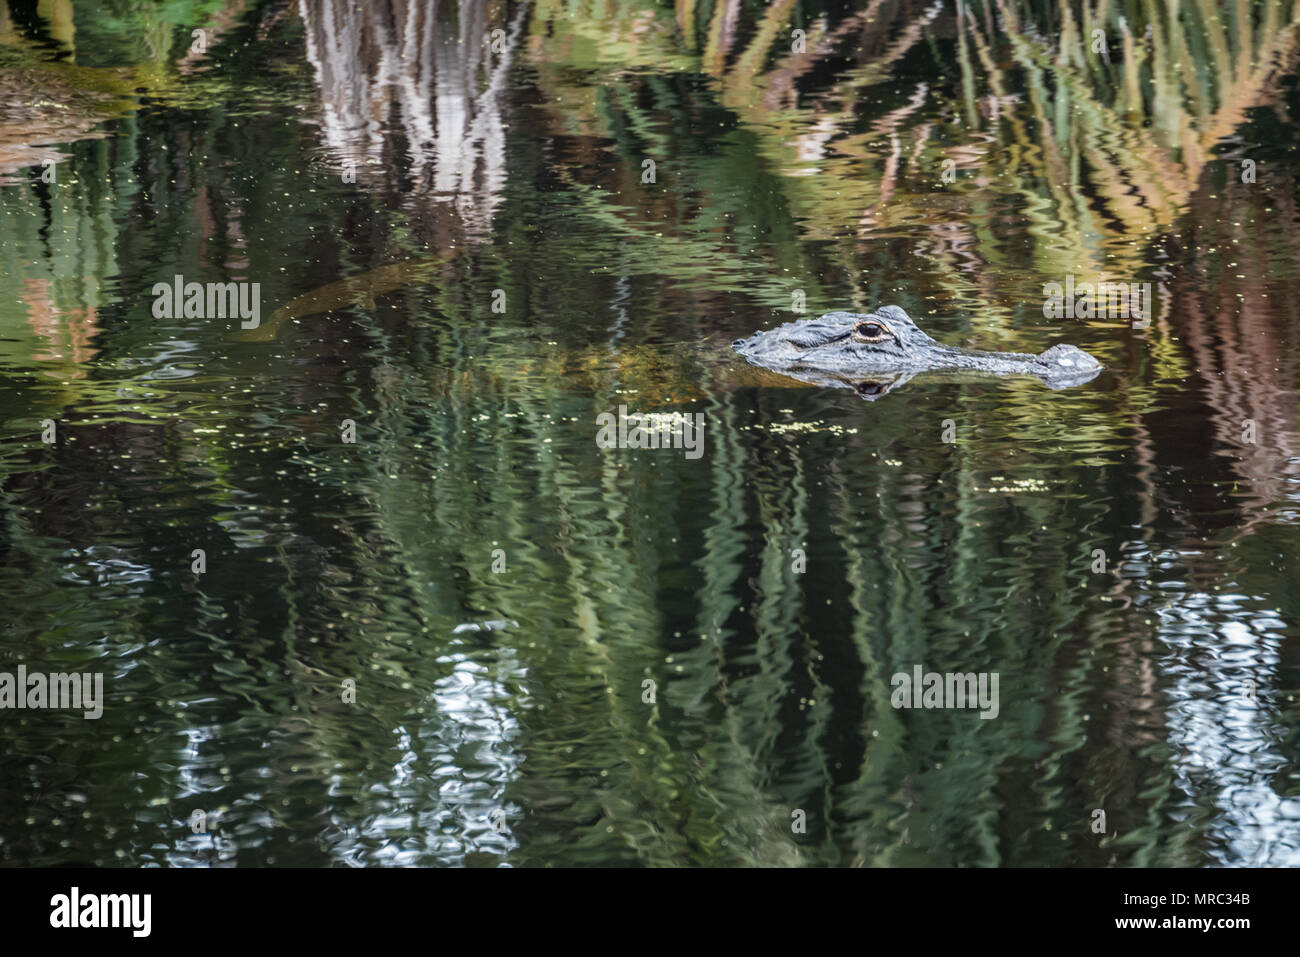 Florida alligator floats motionless in the water of the Guana River while a gar fish swims just below the surface. - Stock Image